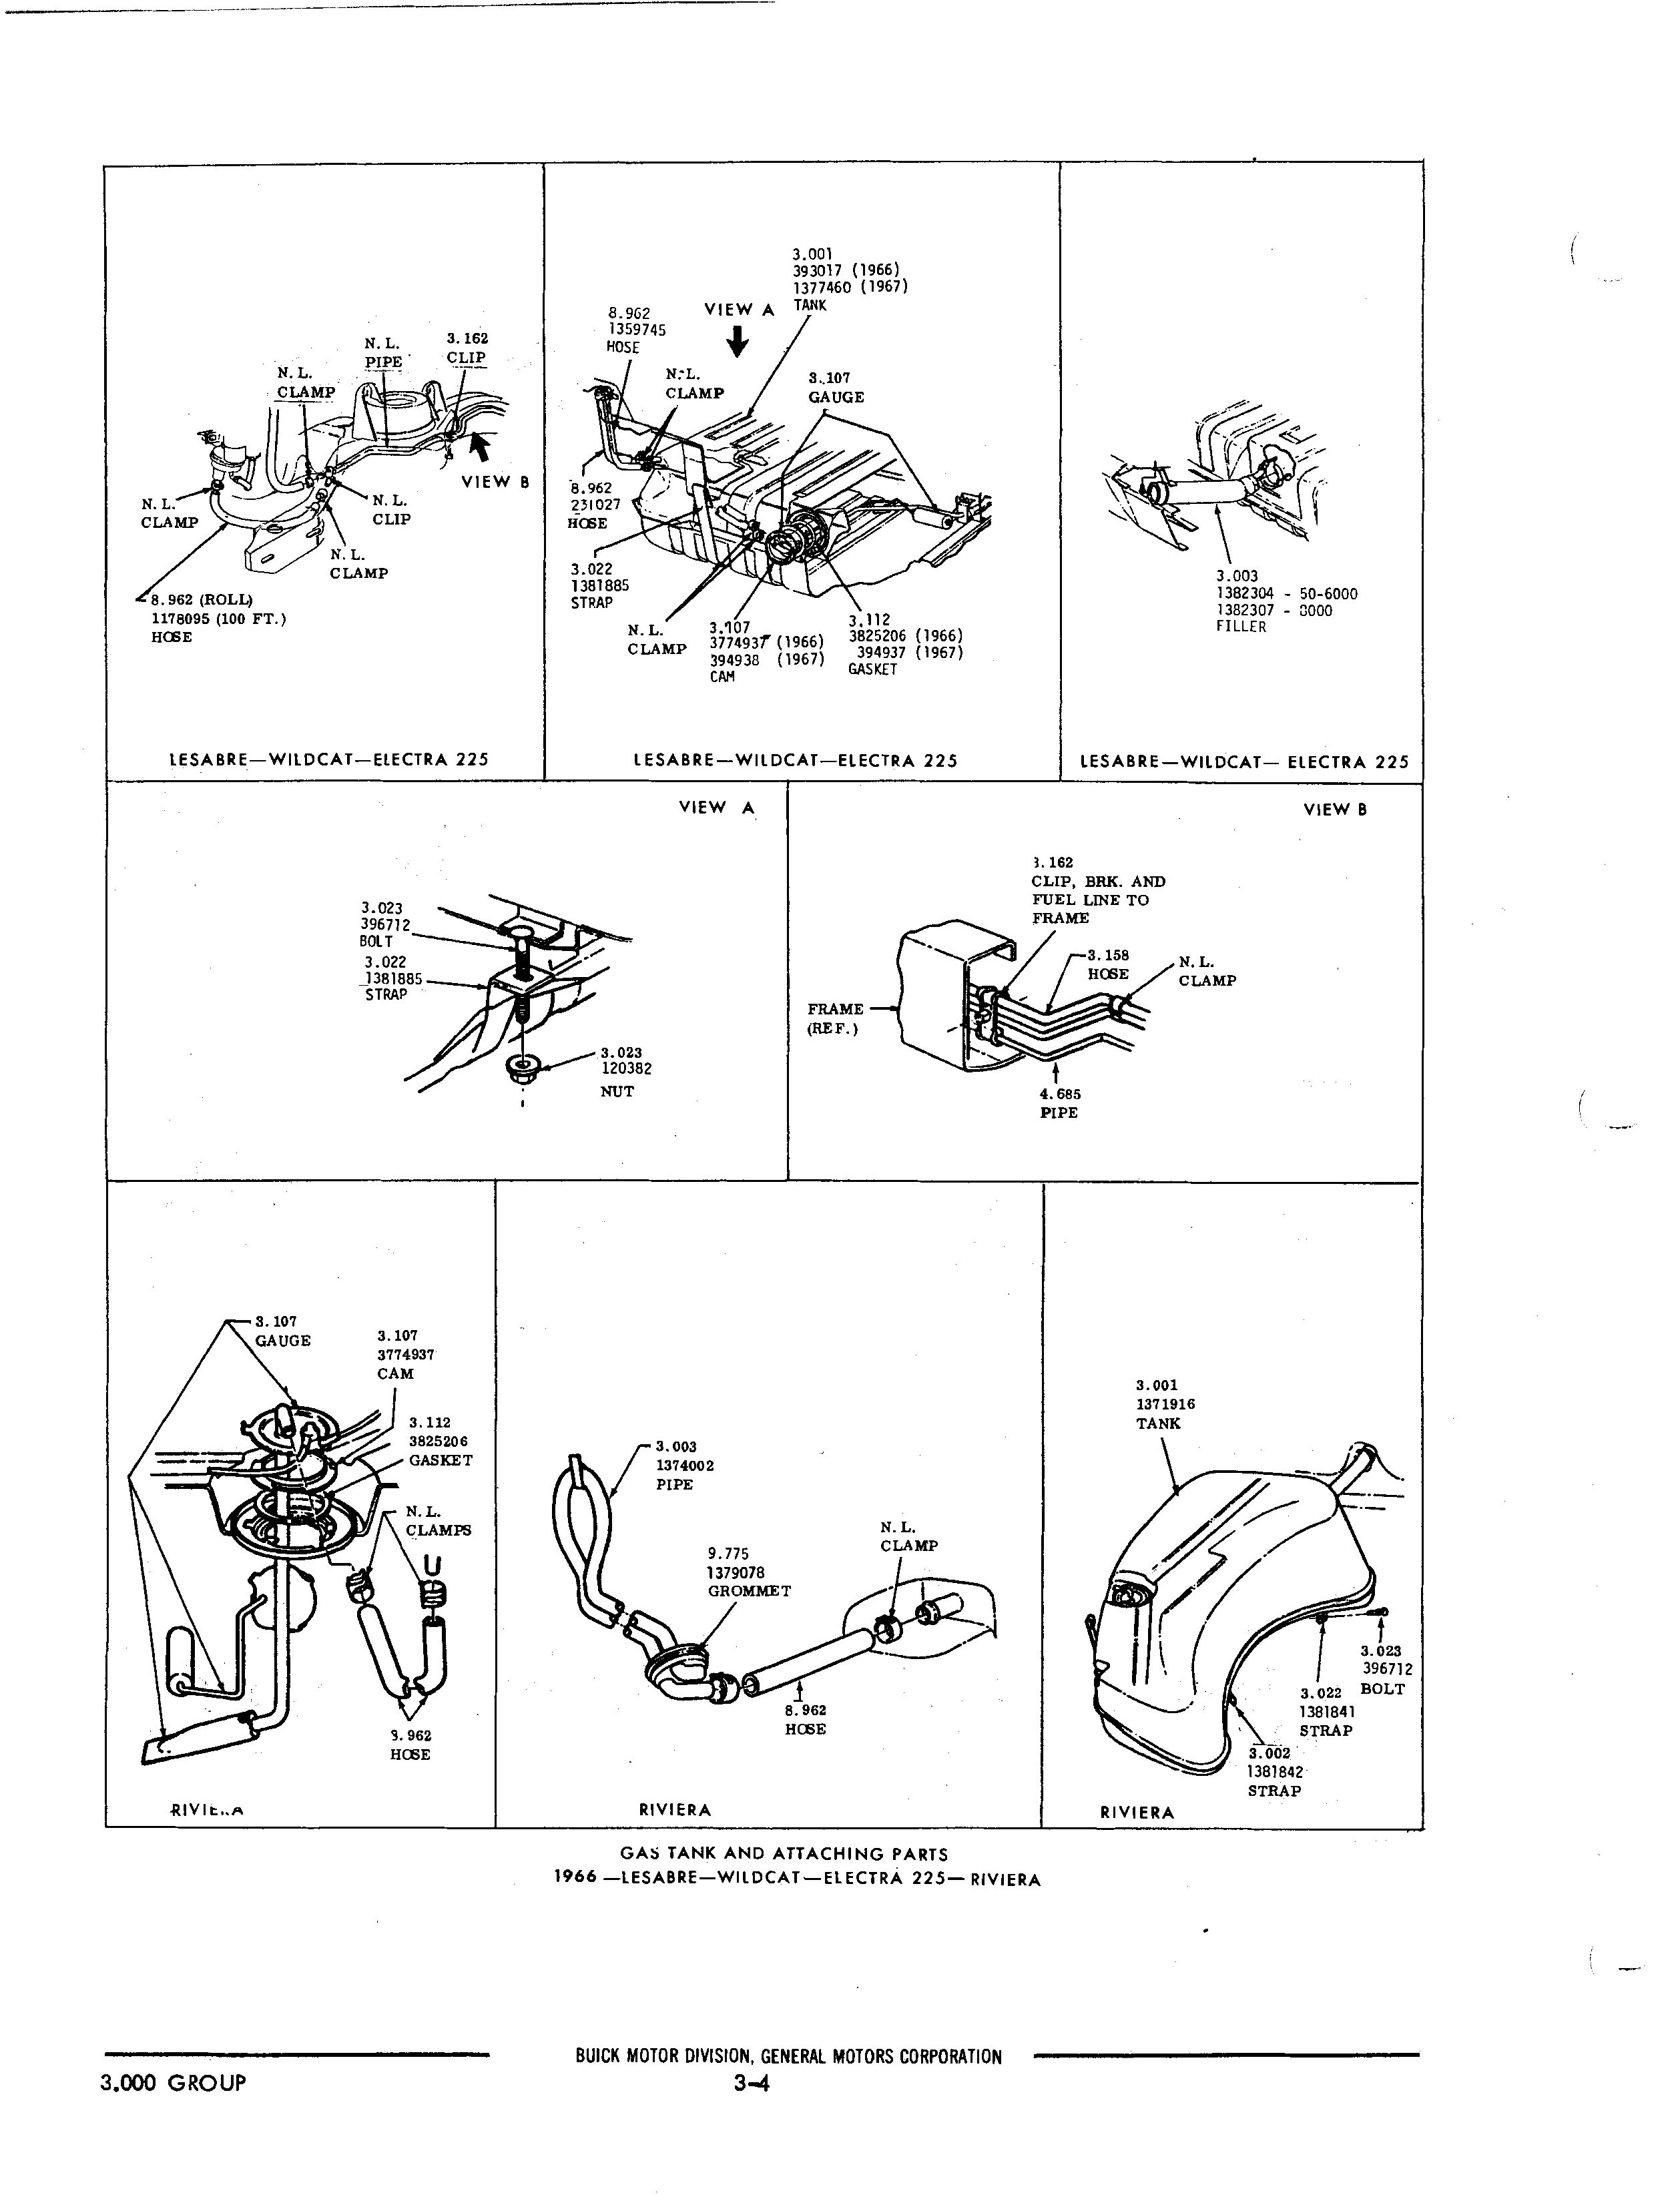 1948 buick wiring harness  buick  auto wiring diagram